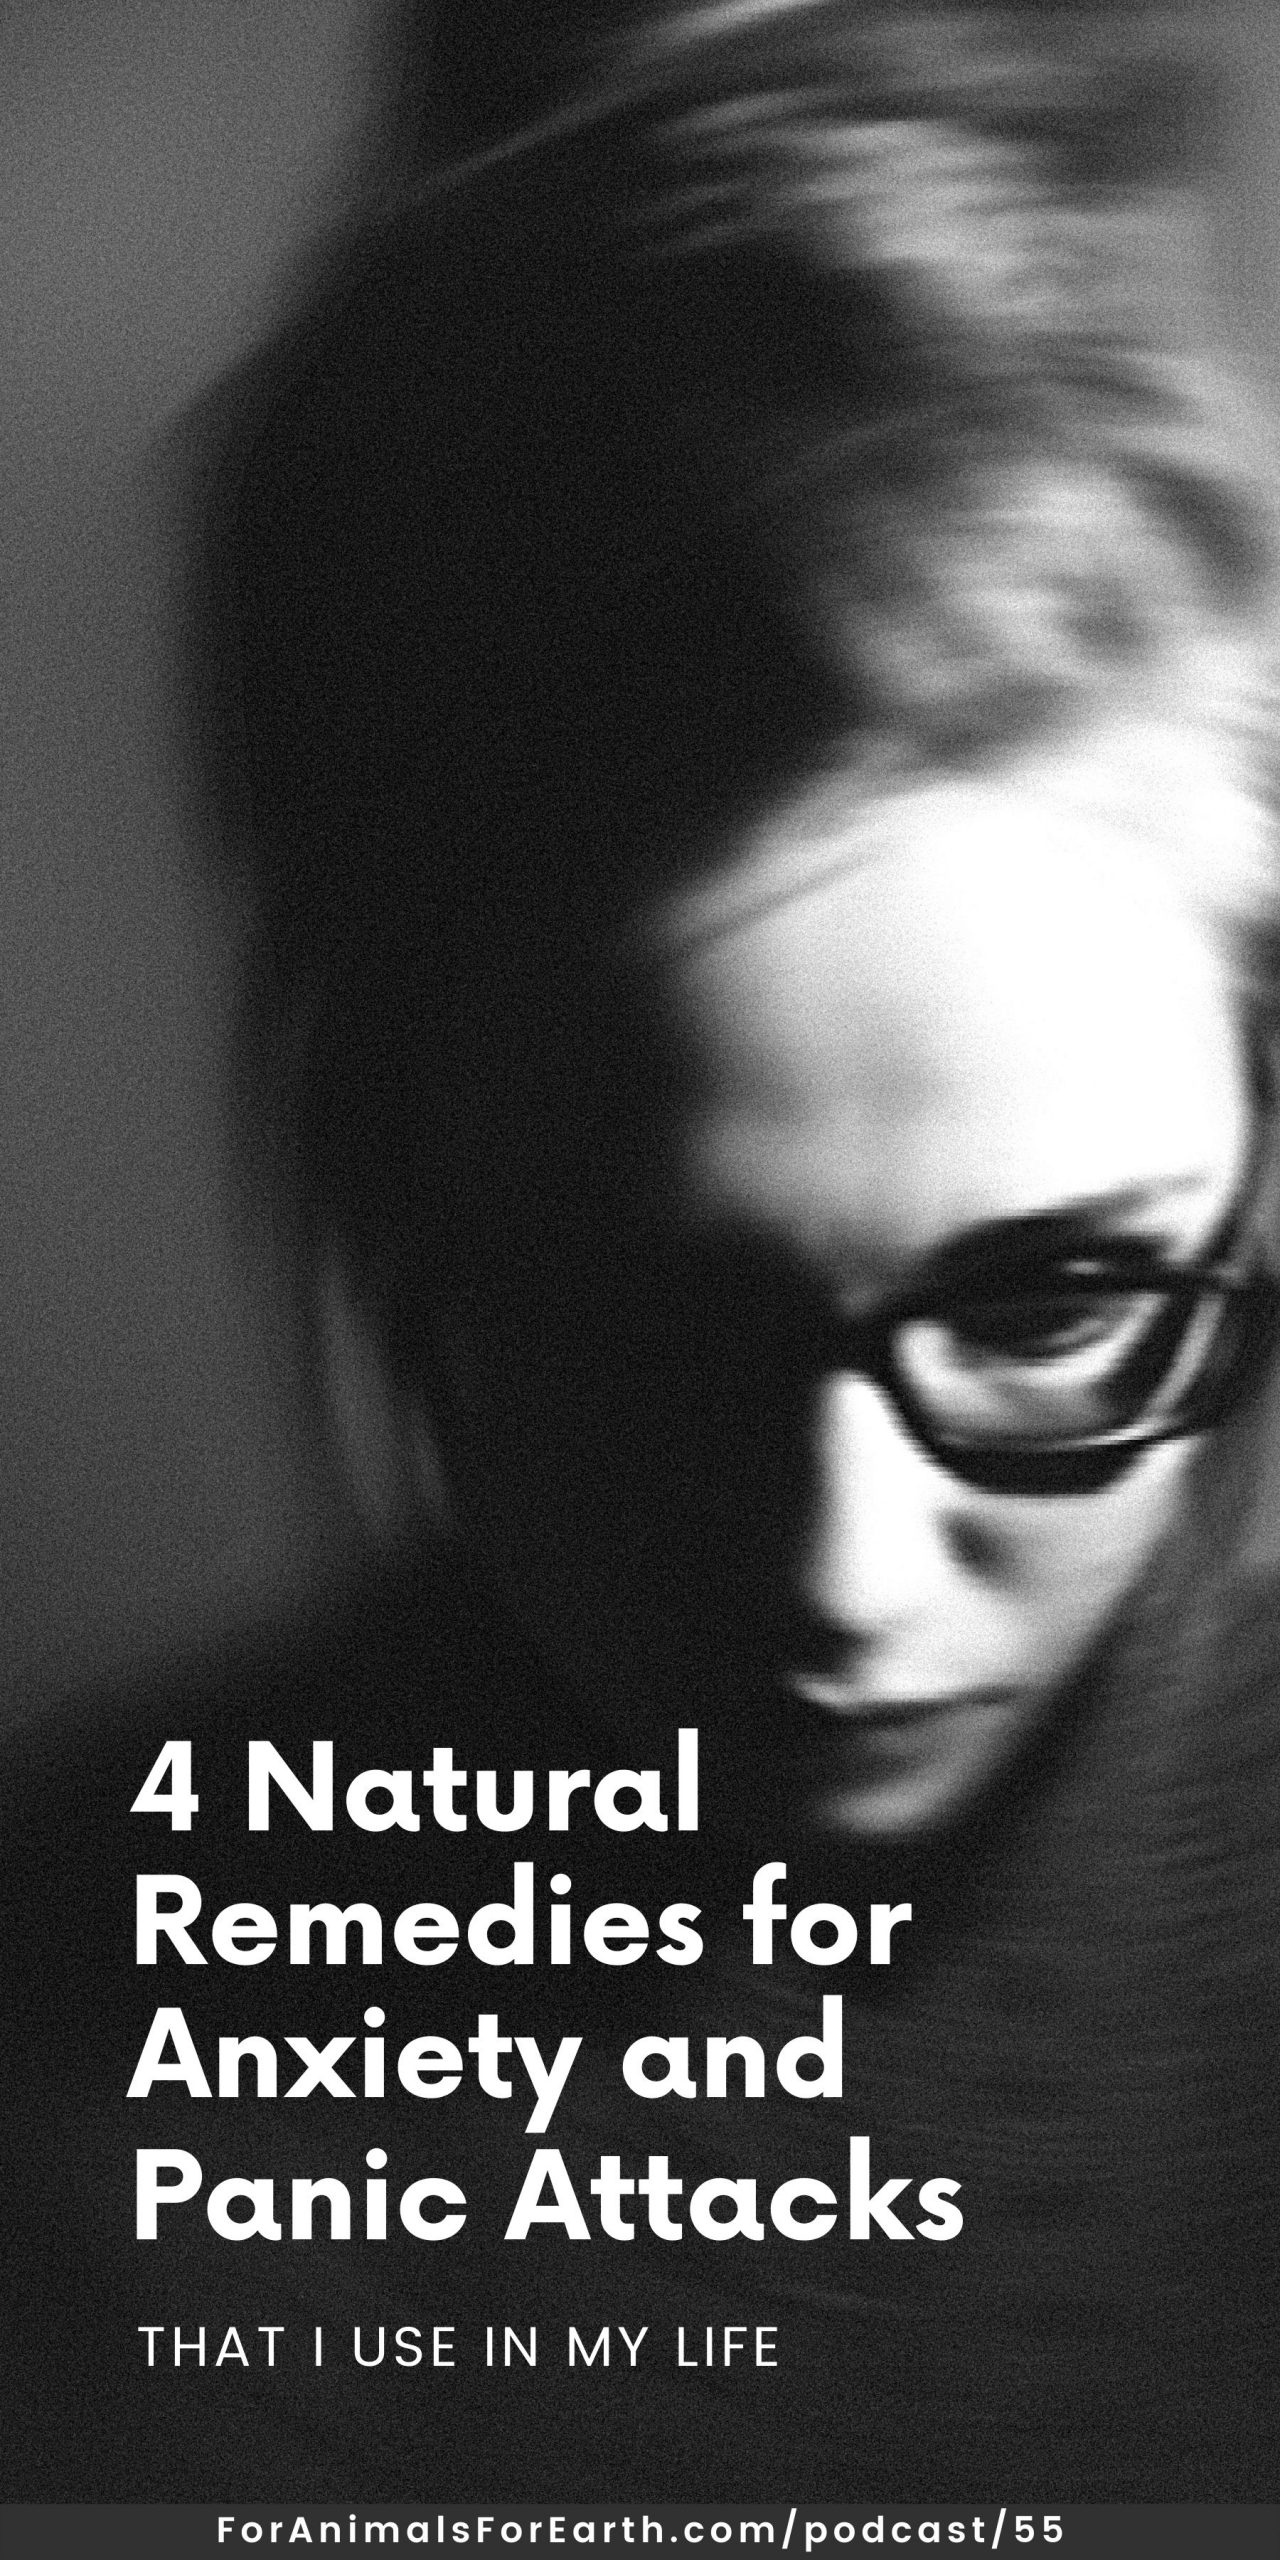 As an empath I feel the pain of animals deeply. Here are 4 natural remedies for anxiety and panic attacks that I pull from in my daily life. For Animals. For Earth. podcast